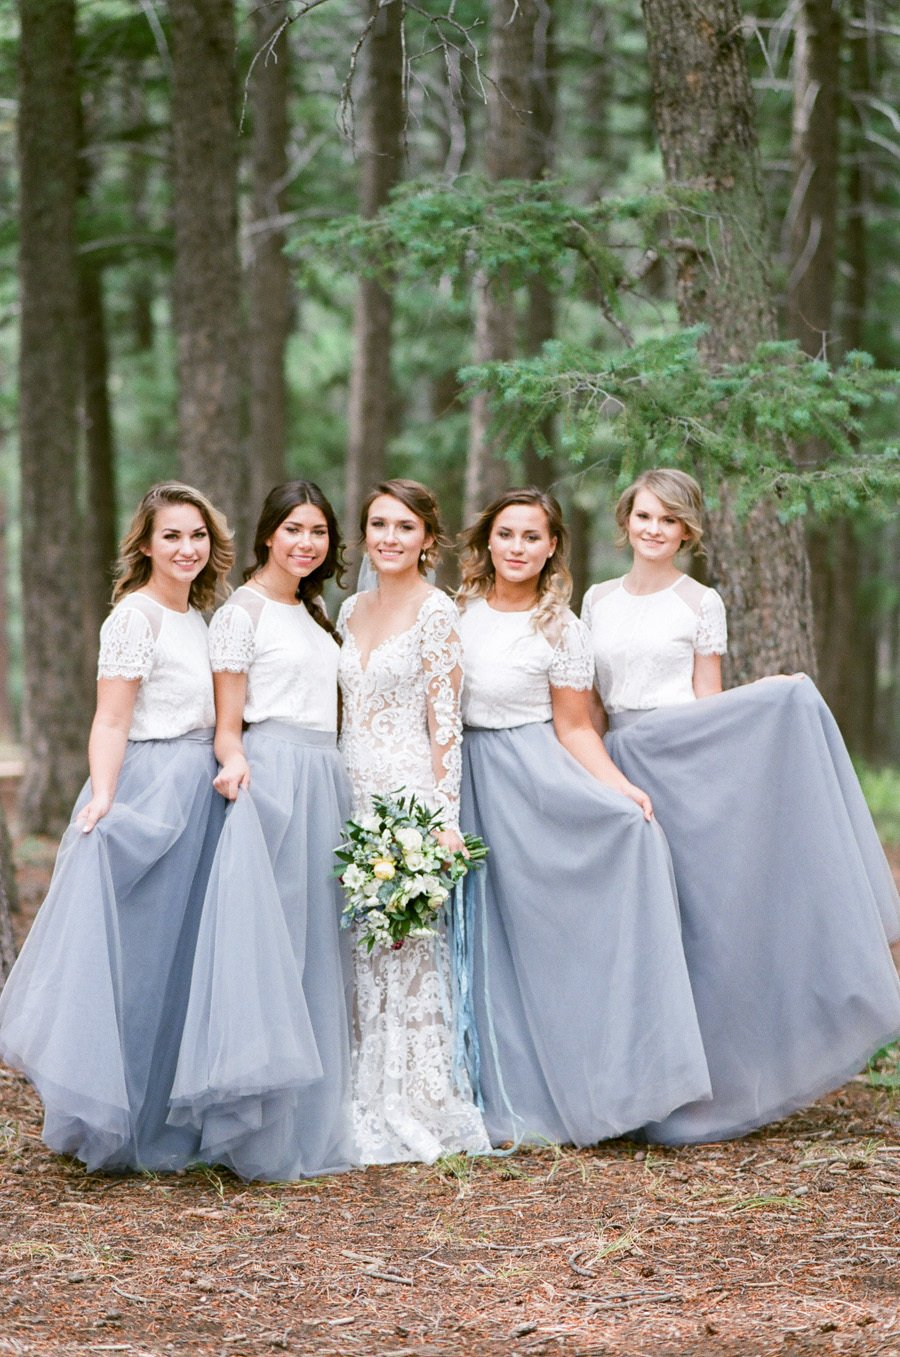 Lace Short Sleeves Tulle Long Wedding Party Dresses Cheap Charming Bridesmaid Dresses, WG387